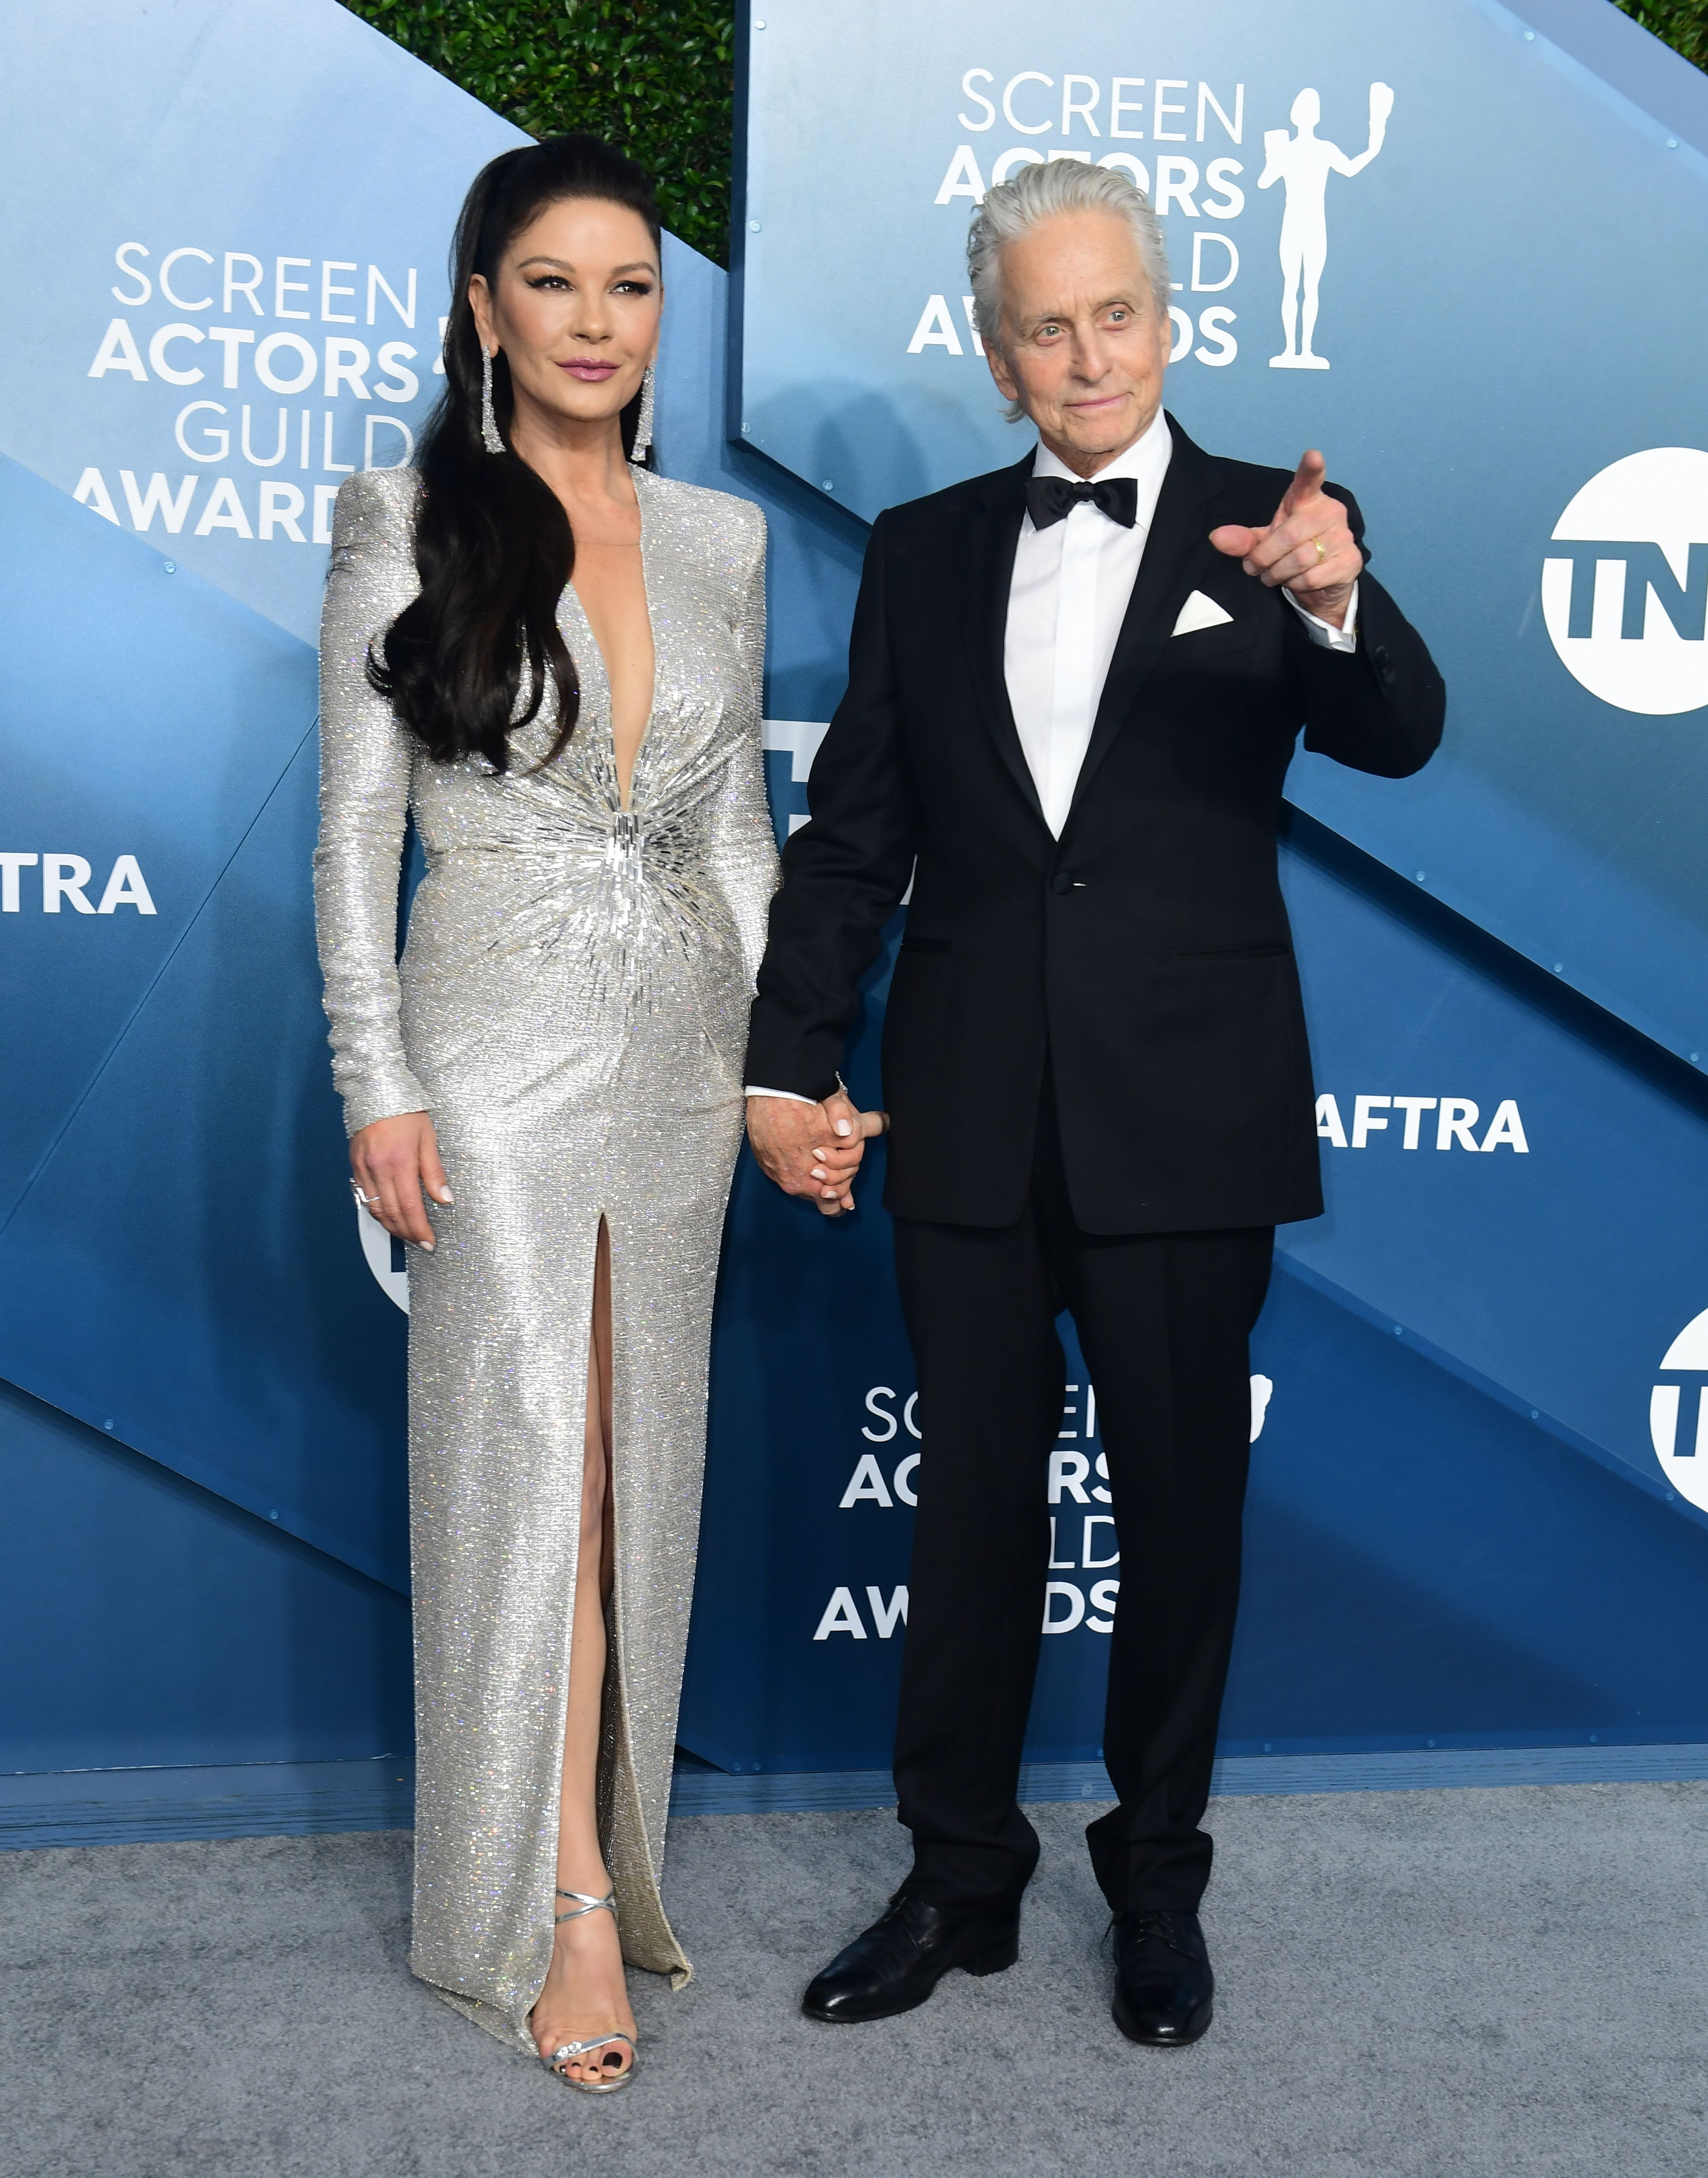 US actor Michael Douglas and his wife actress Catherine Zeta-Jones arrive for the 26th Annual Screen Actors Guild Awards at the Shrine Auditorium in Los Angeles on January 19, 2020. (Photo by FREDERIC J. BROWN / AFP) (Photo by FREDERIC J. BROWN/AFP via Getty Images)